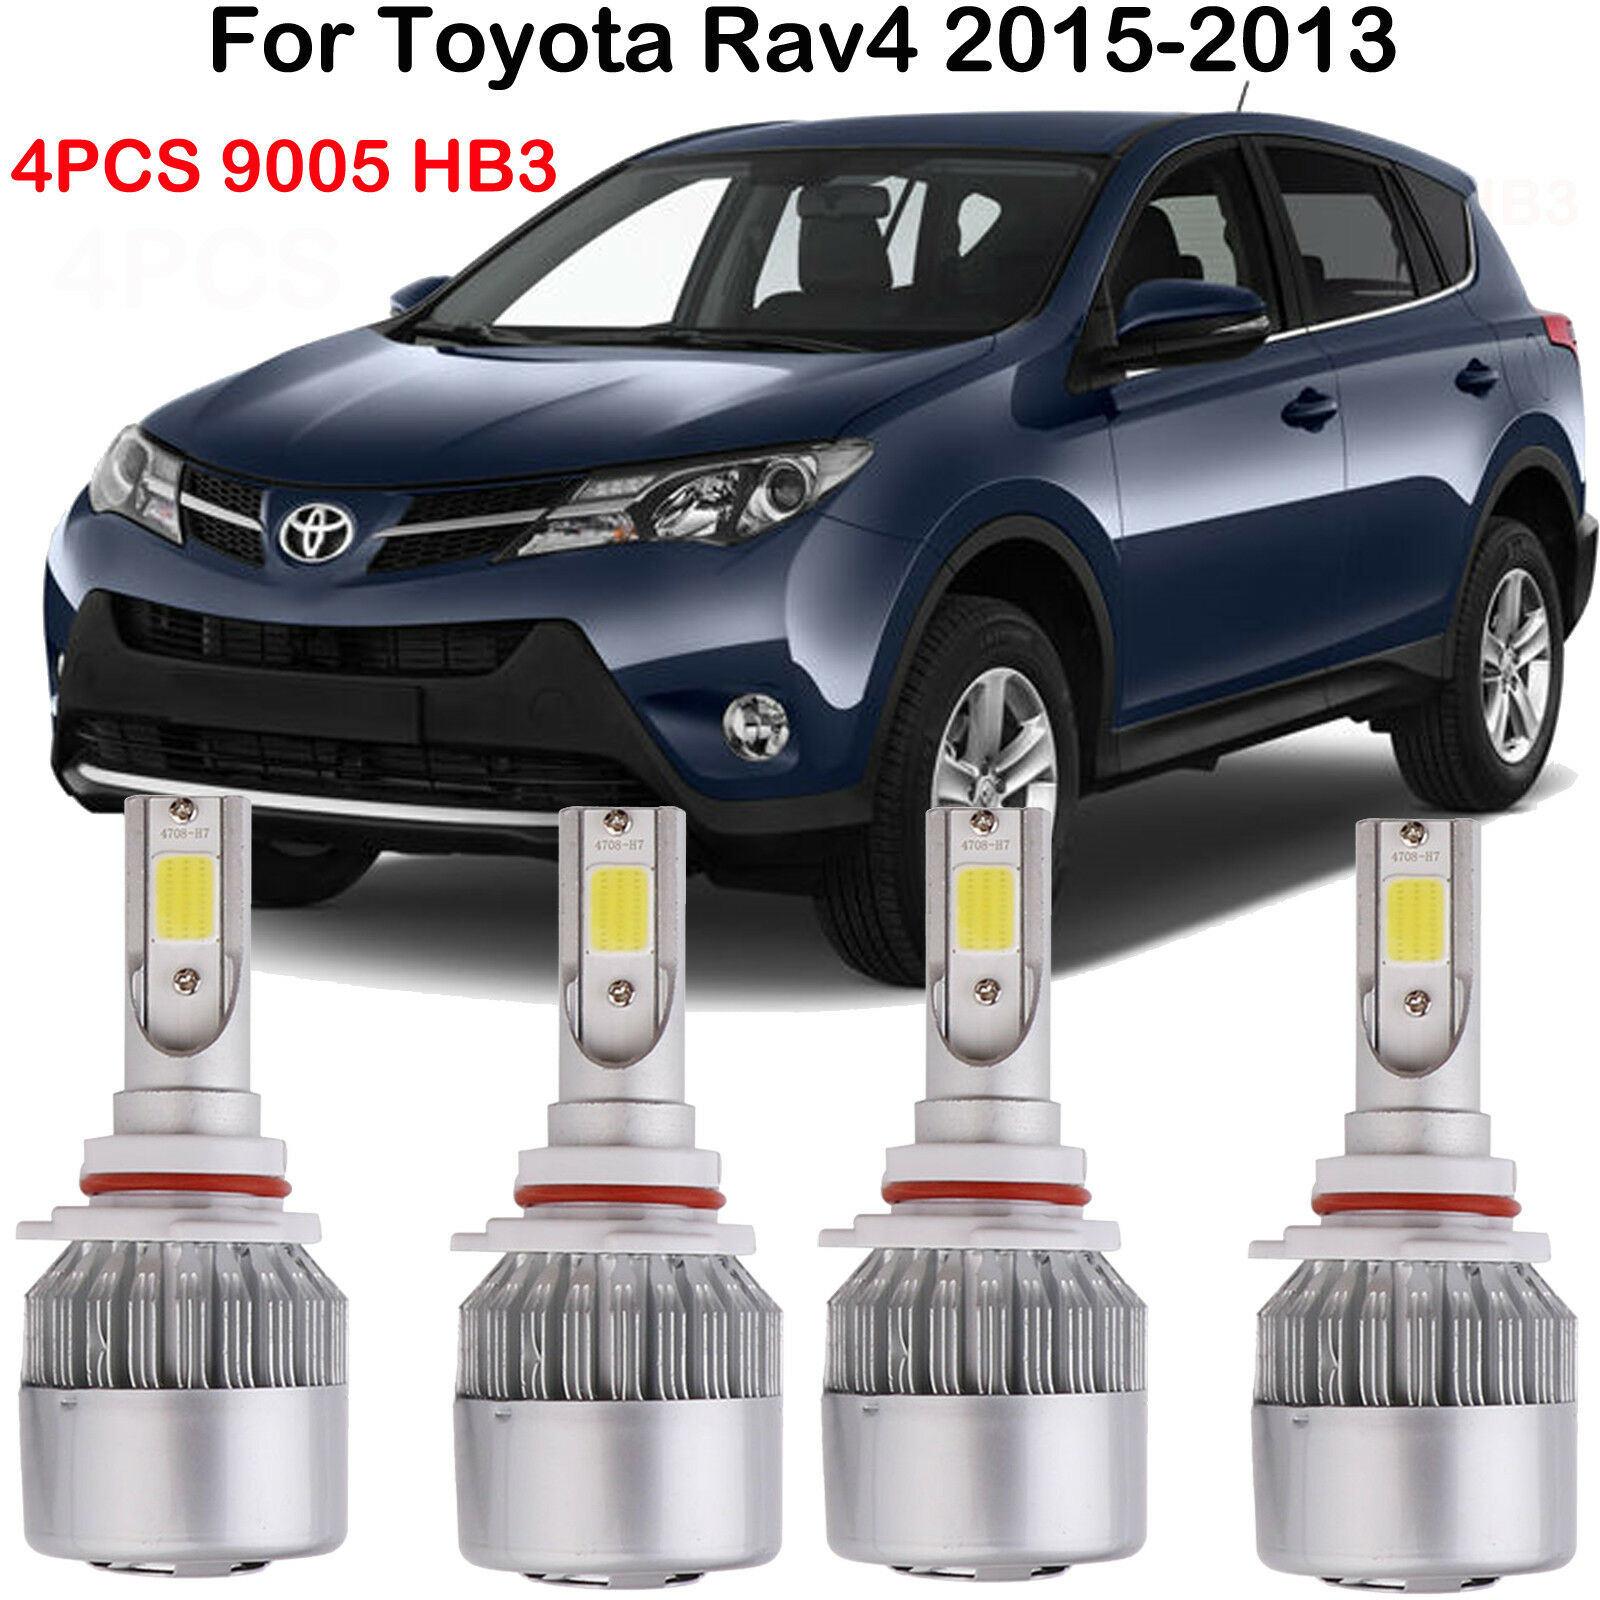 4pcs Led Headlight Bulbs 9005 Hb3 Kits For Toyota Rav4 2015 2013 2001 Kit High Low Beam